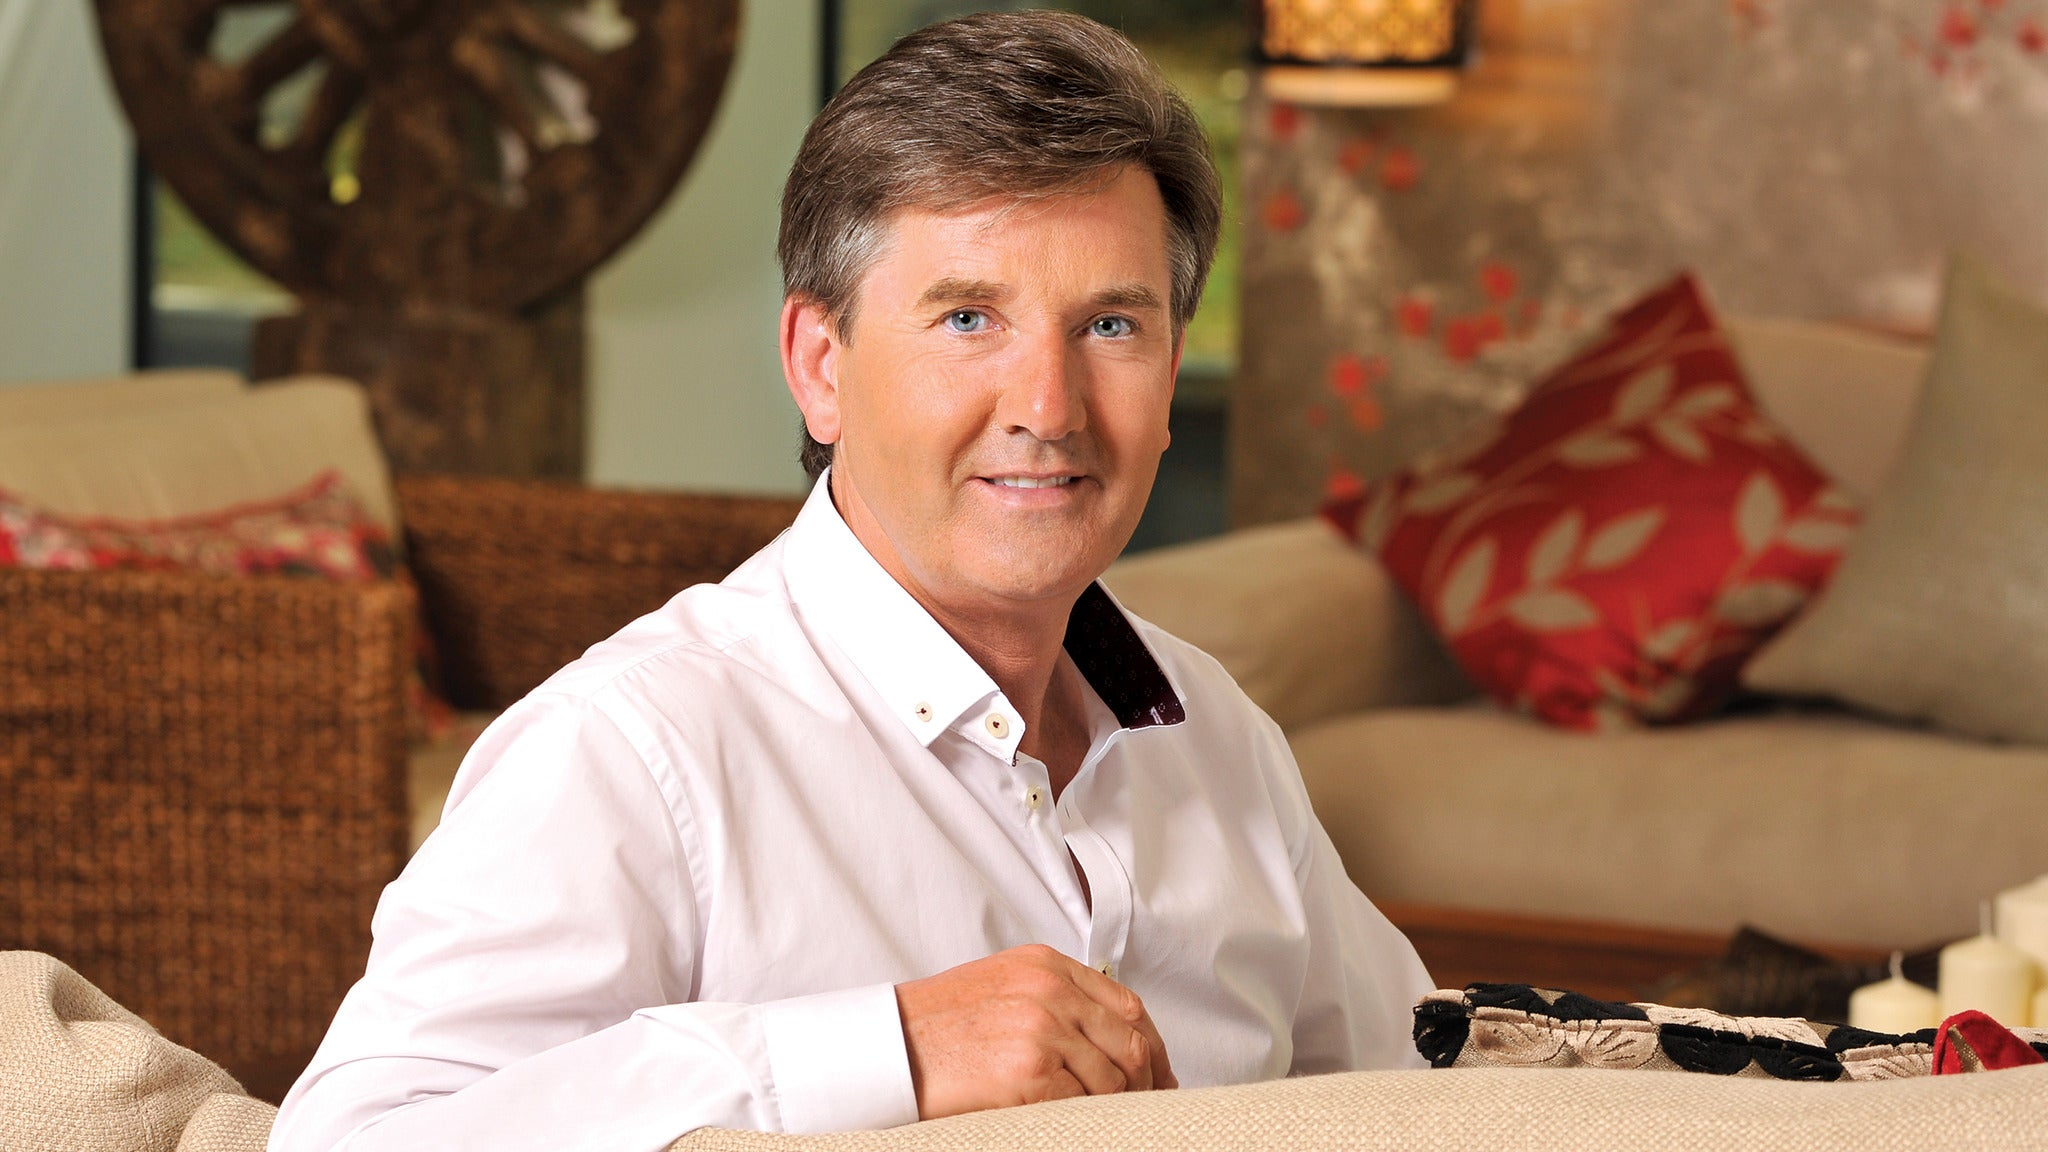 Daniel O'Donnell at iWireless Center - Moline, IL 61265